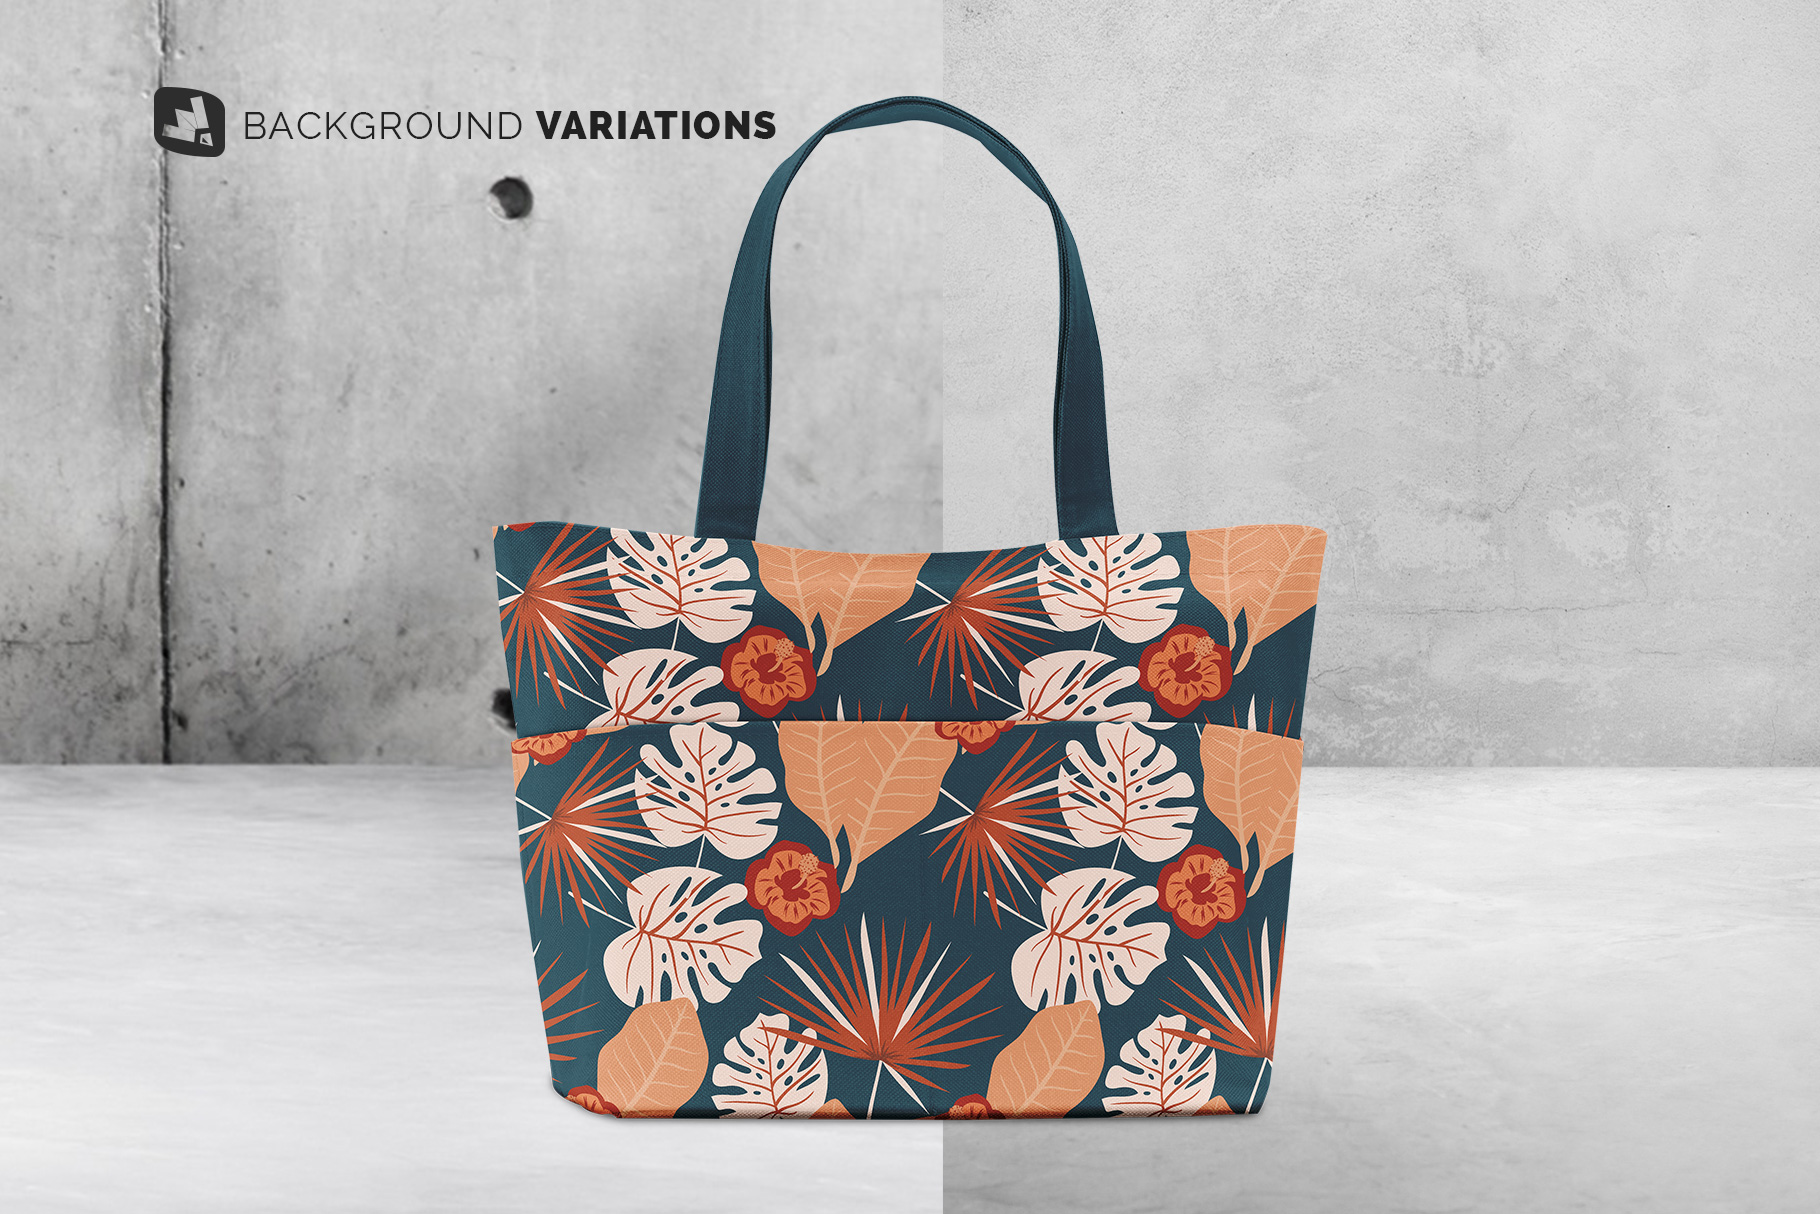 background options of the front view fabric shopping bag mockup